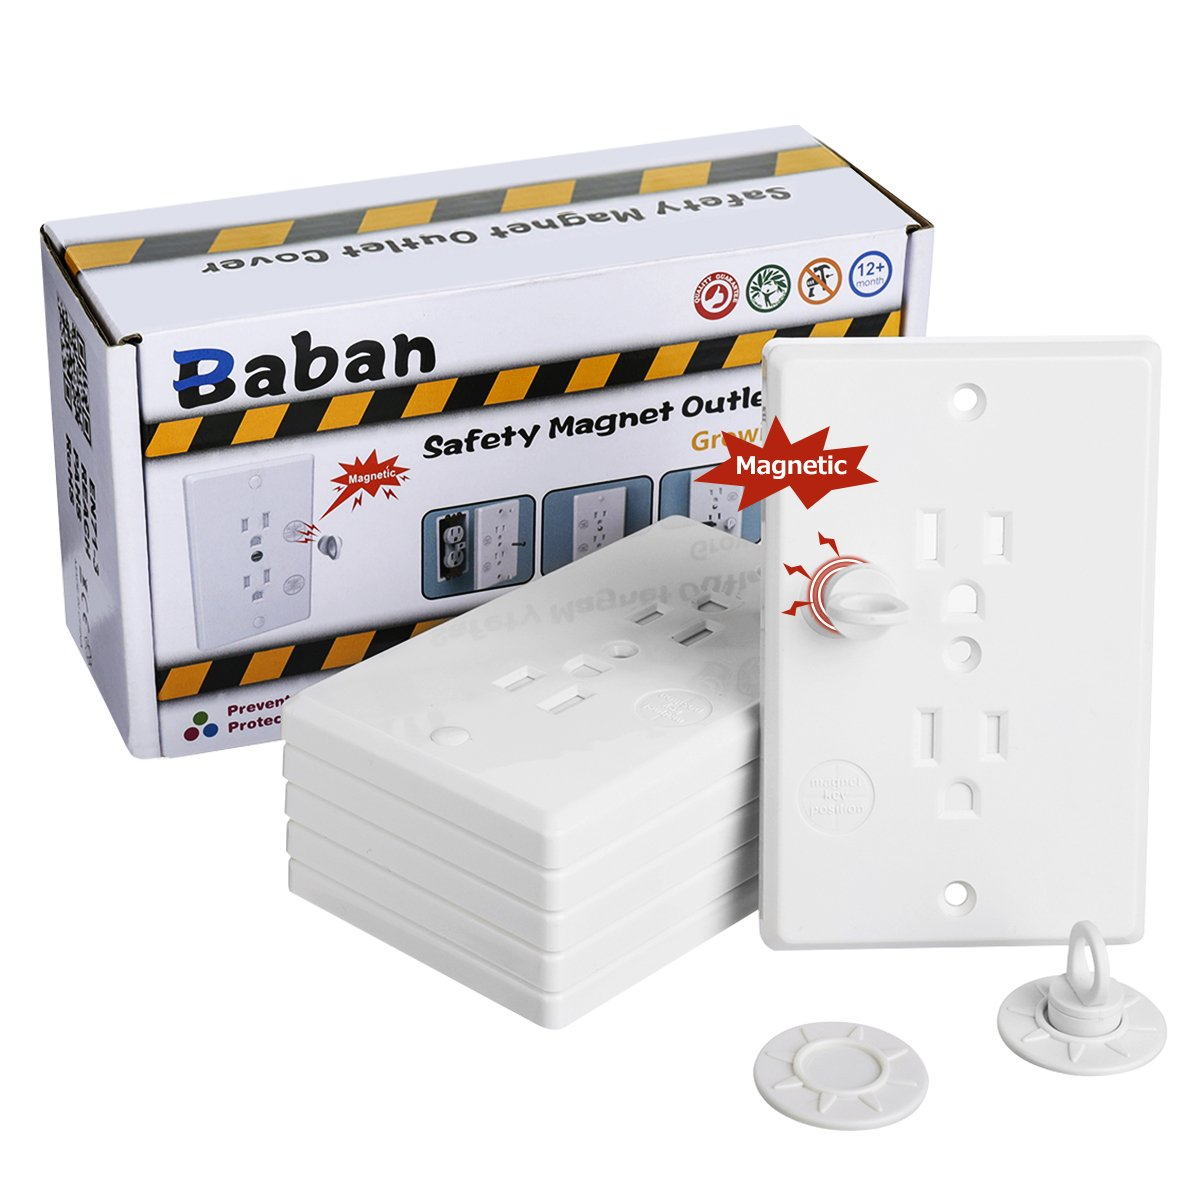 Baby Safety Outlet Cover, Baban Upgrade Baby Socket Cover Set with Magnetic Key, Universal Self-Closing Child Guards Socket Plugs Protector, Flame Retardant ABS, Standard US Regulation